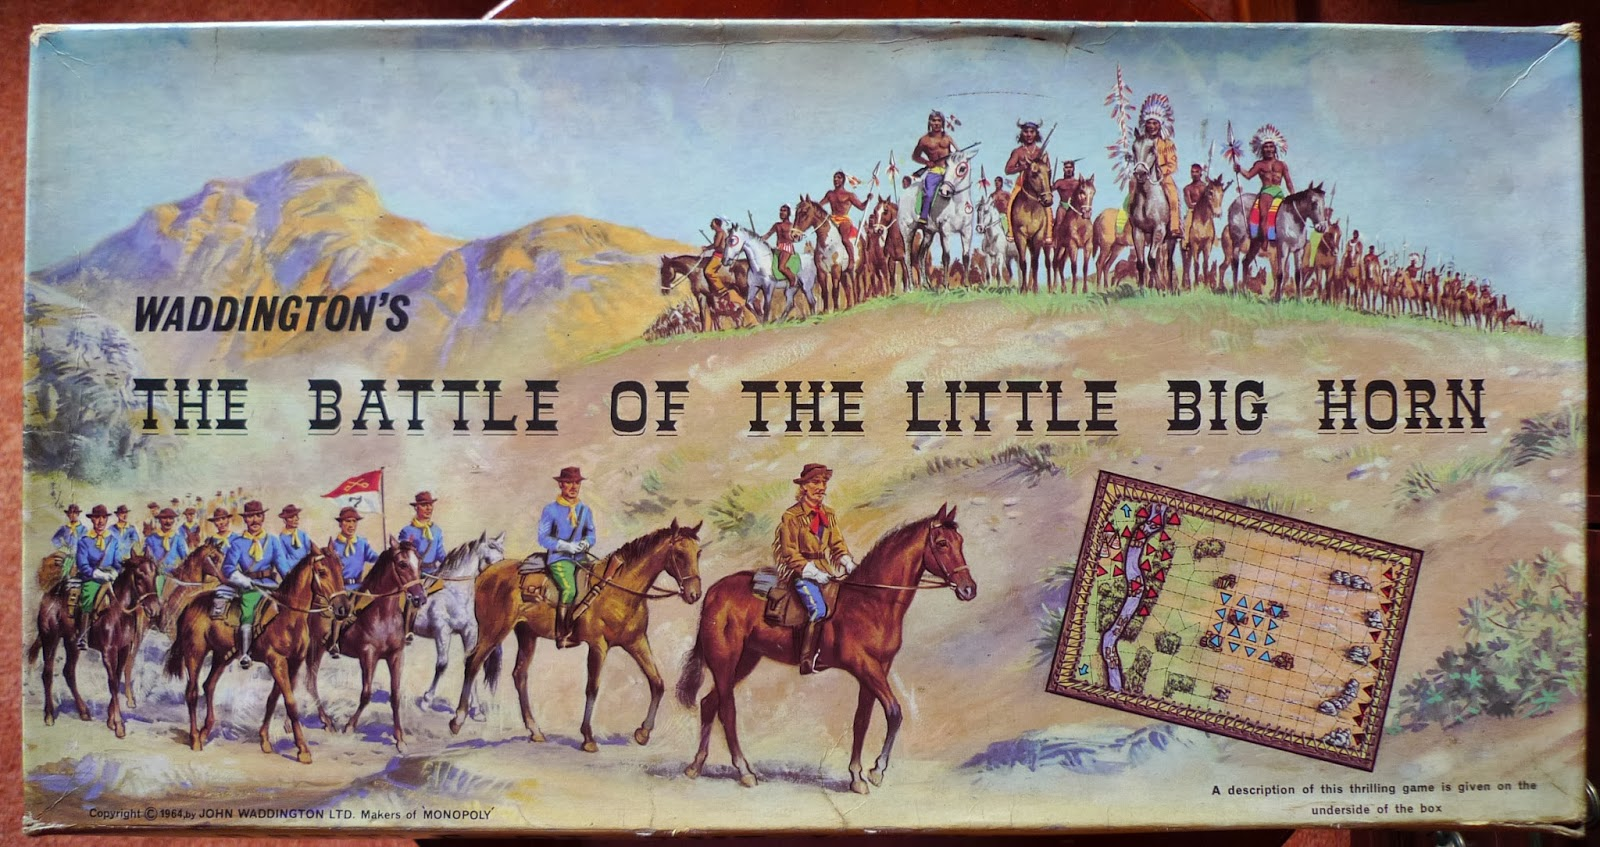 the battle of little bighorn The battle of the little bighorn was fought along the ridges, steep bluffs, and ravines of the little bighorn river, in south central montana on june 25-26, 1876.